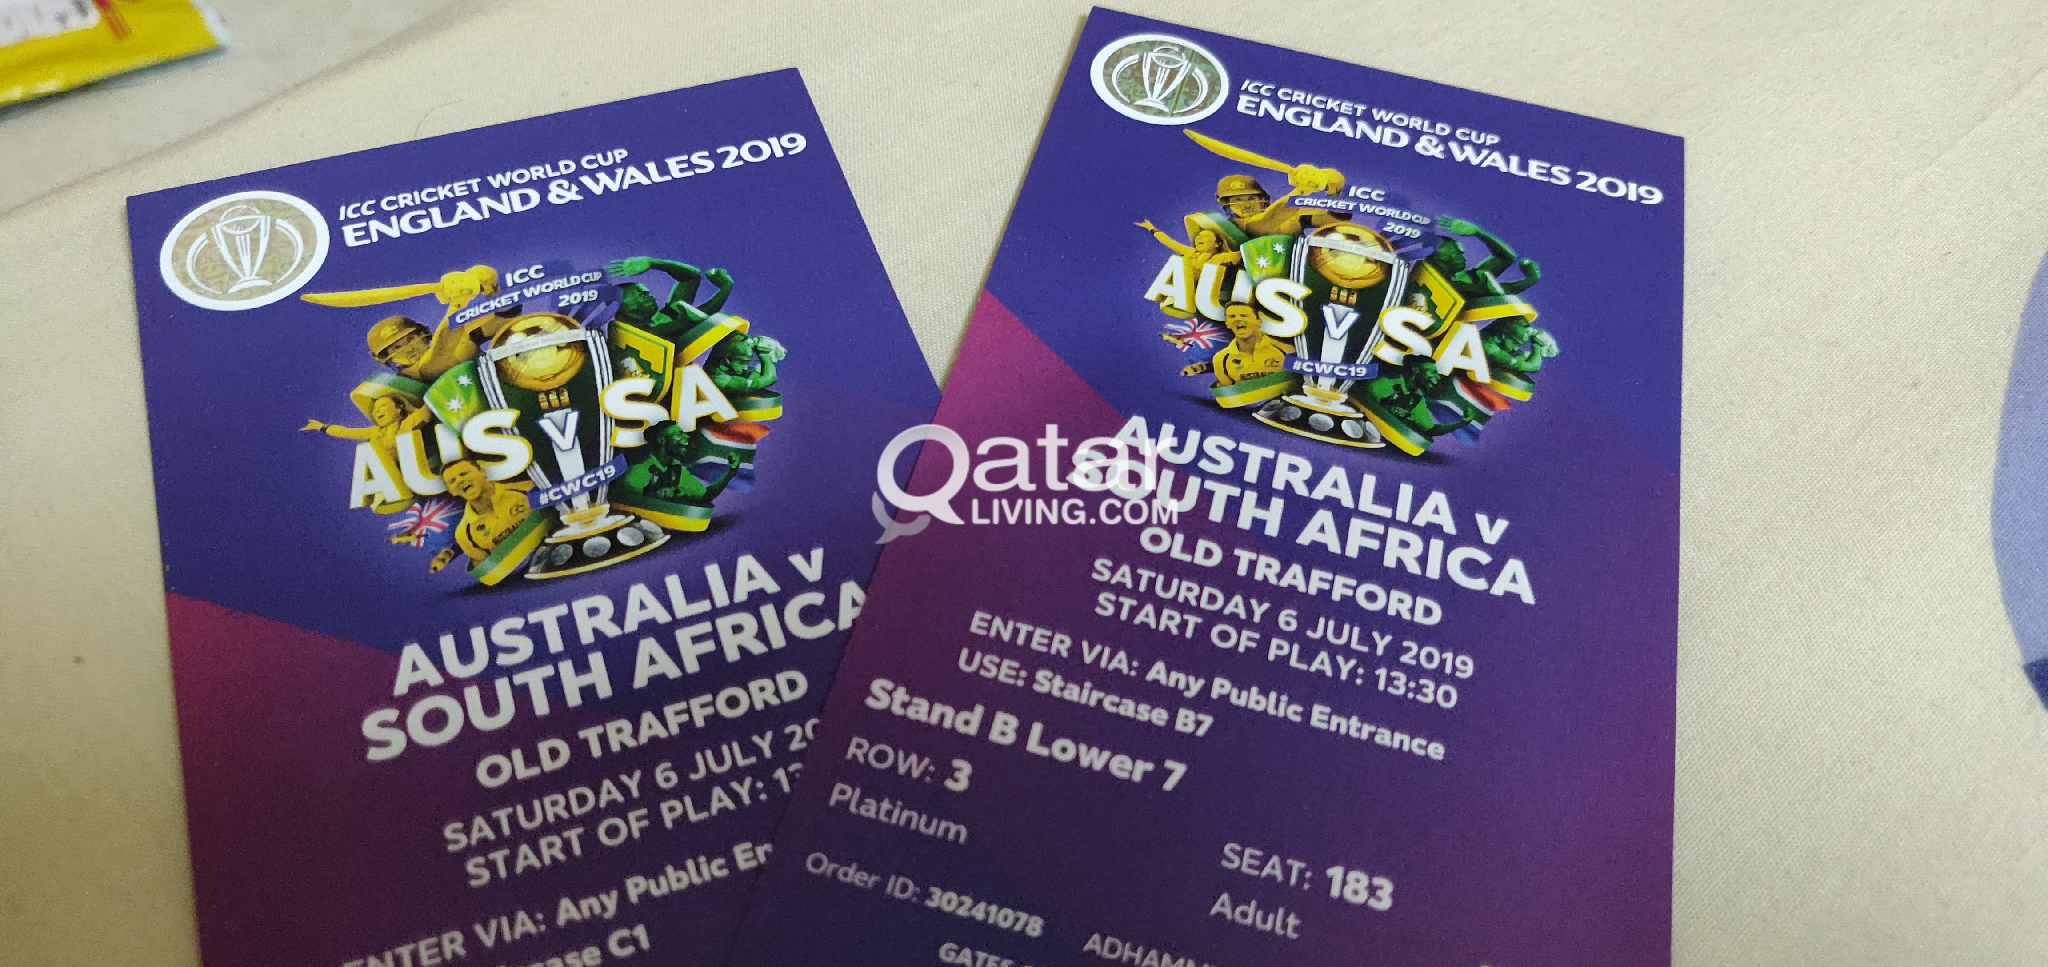 Cricket World Cup Tickets 2019 Platinum Qar850 Qatar Living